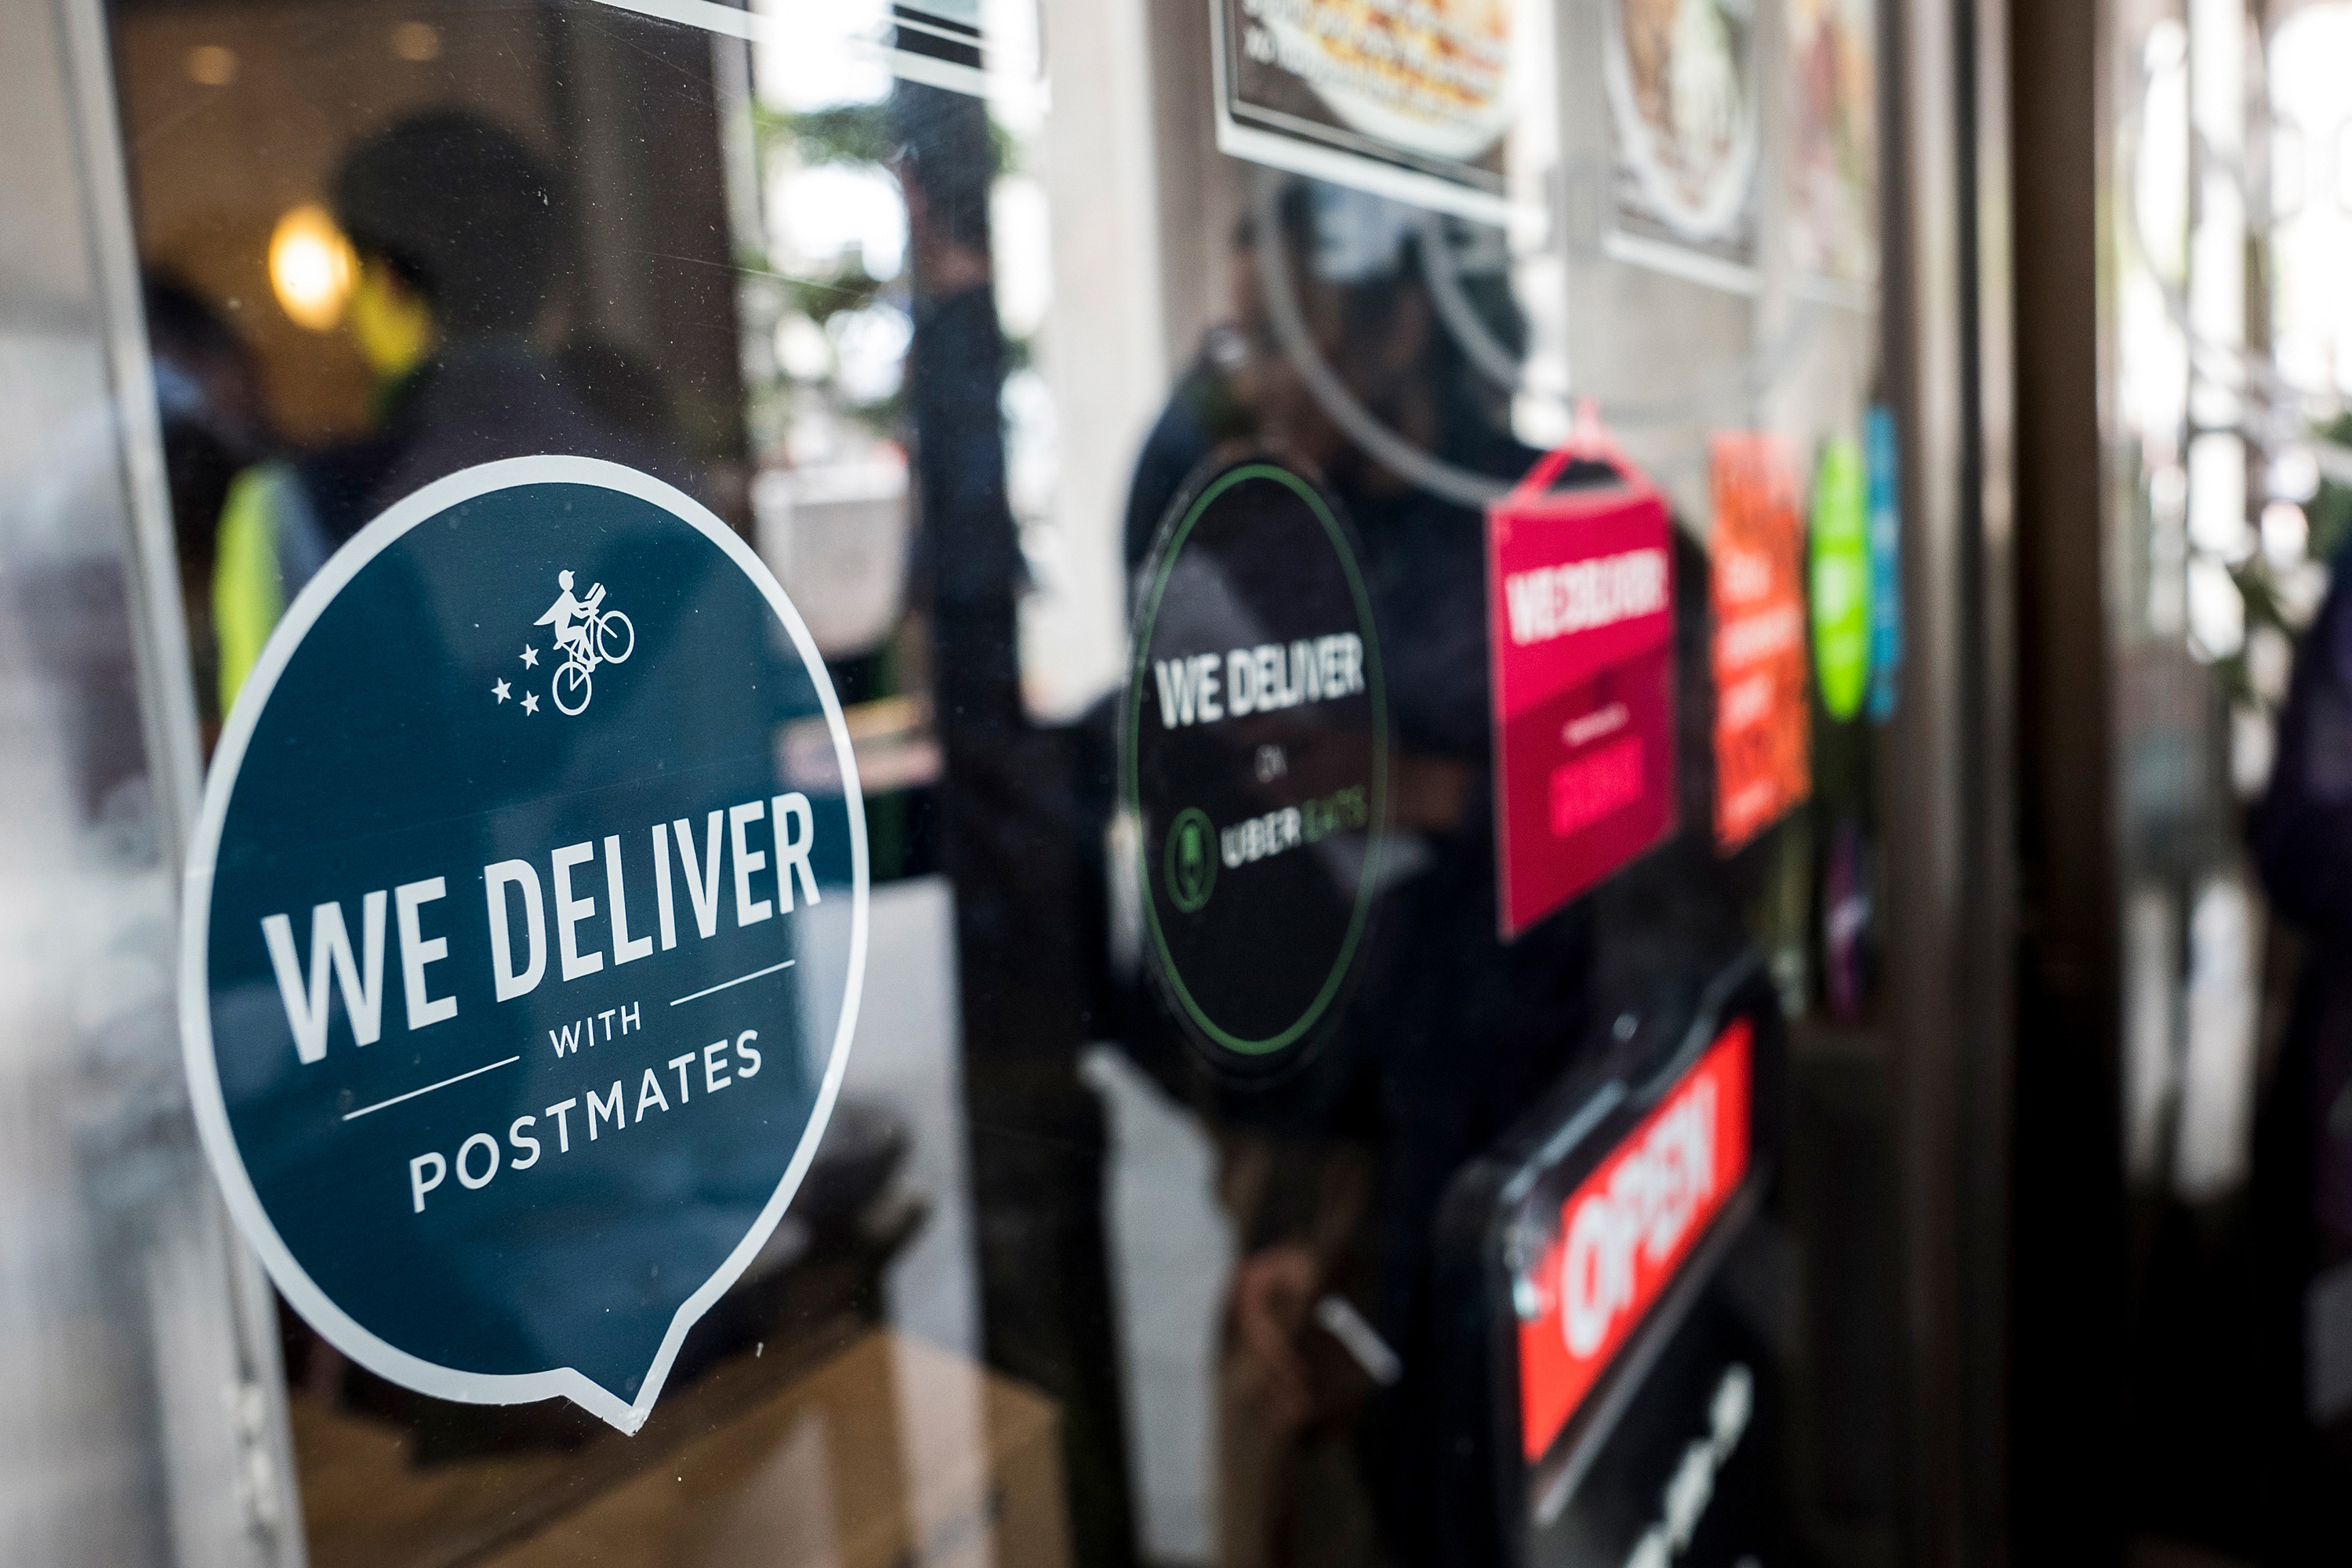 Postmates and Uber Eats use DoorDash's tipping scandal to clear up their own policies